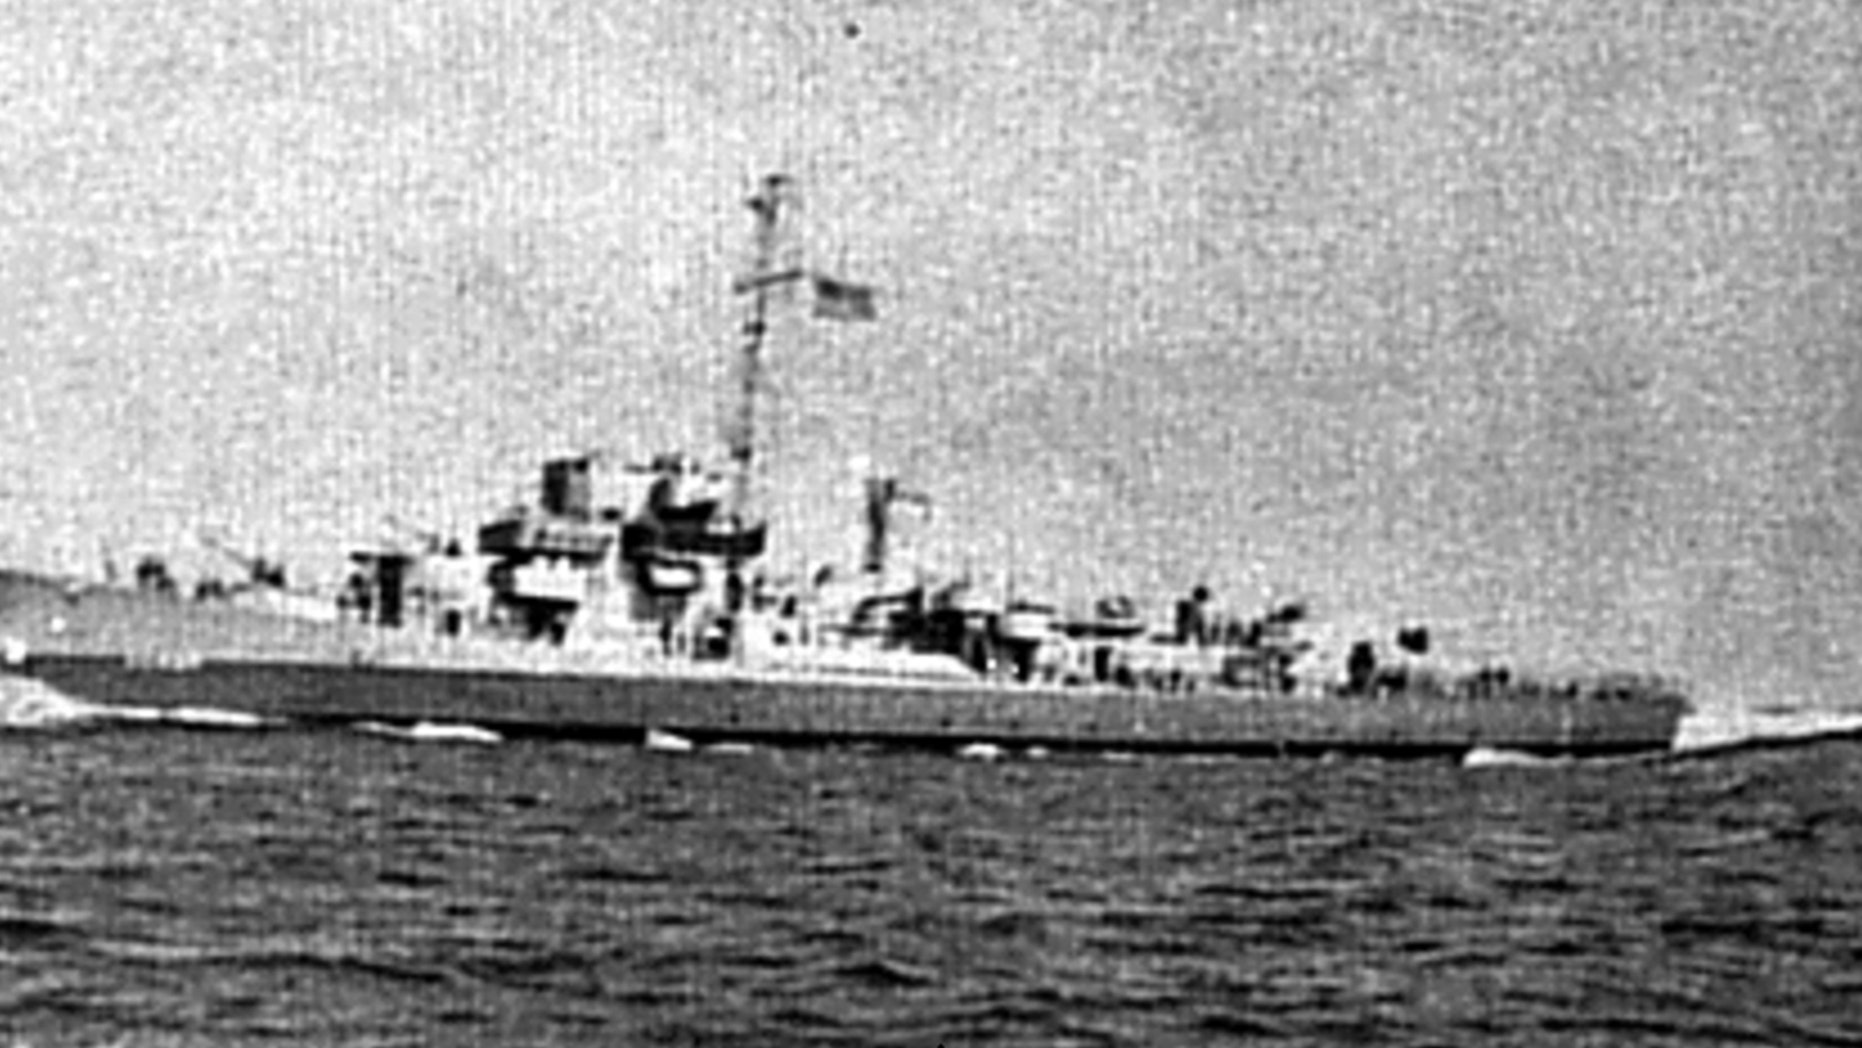 Earl Harvey Hanson was on the USS Rich, pictured here, when it came under attack.